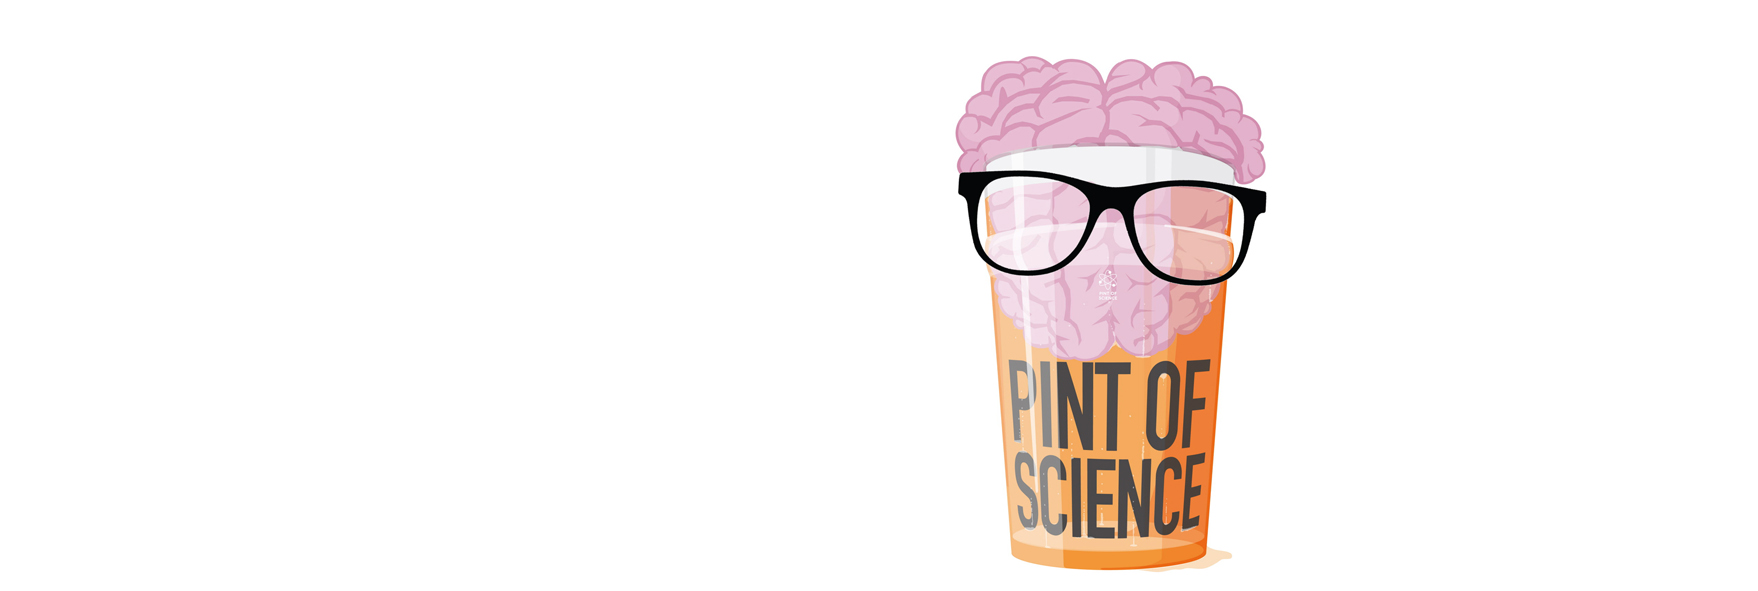 PINT OF SCIENCE FESTIVAL STRASBOURG